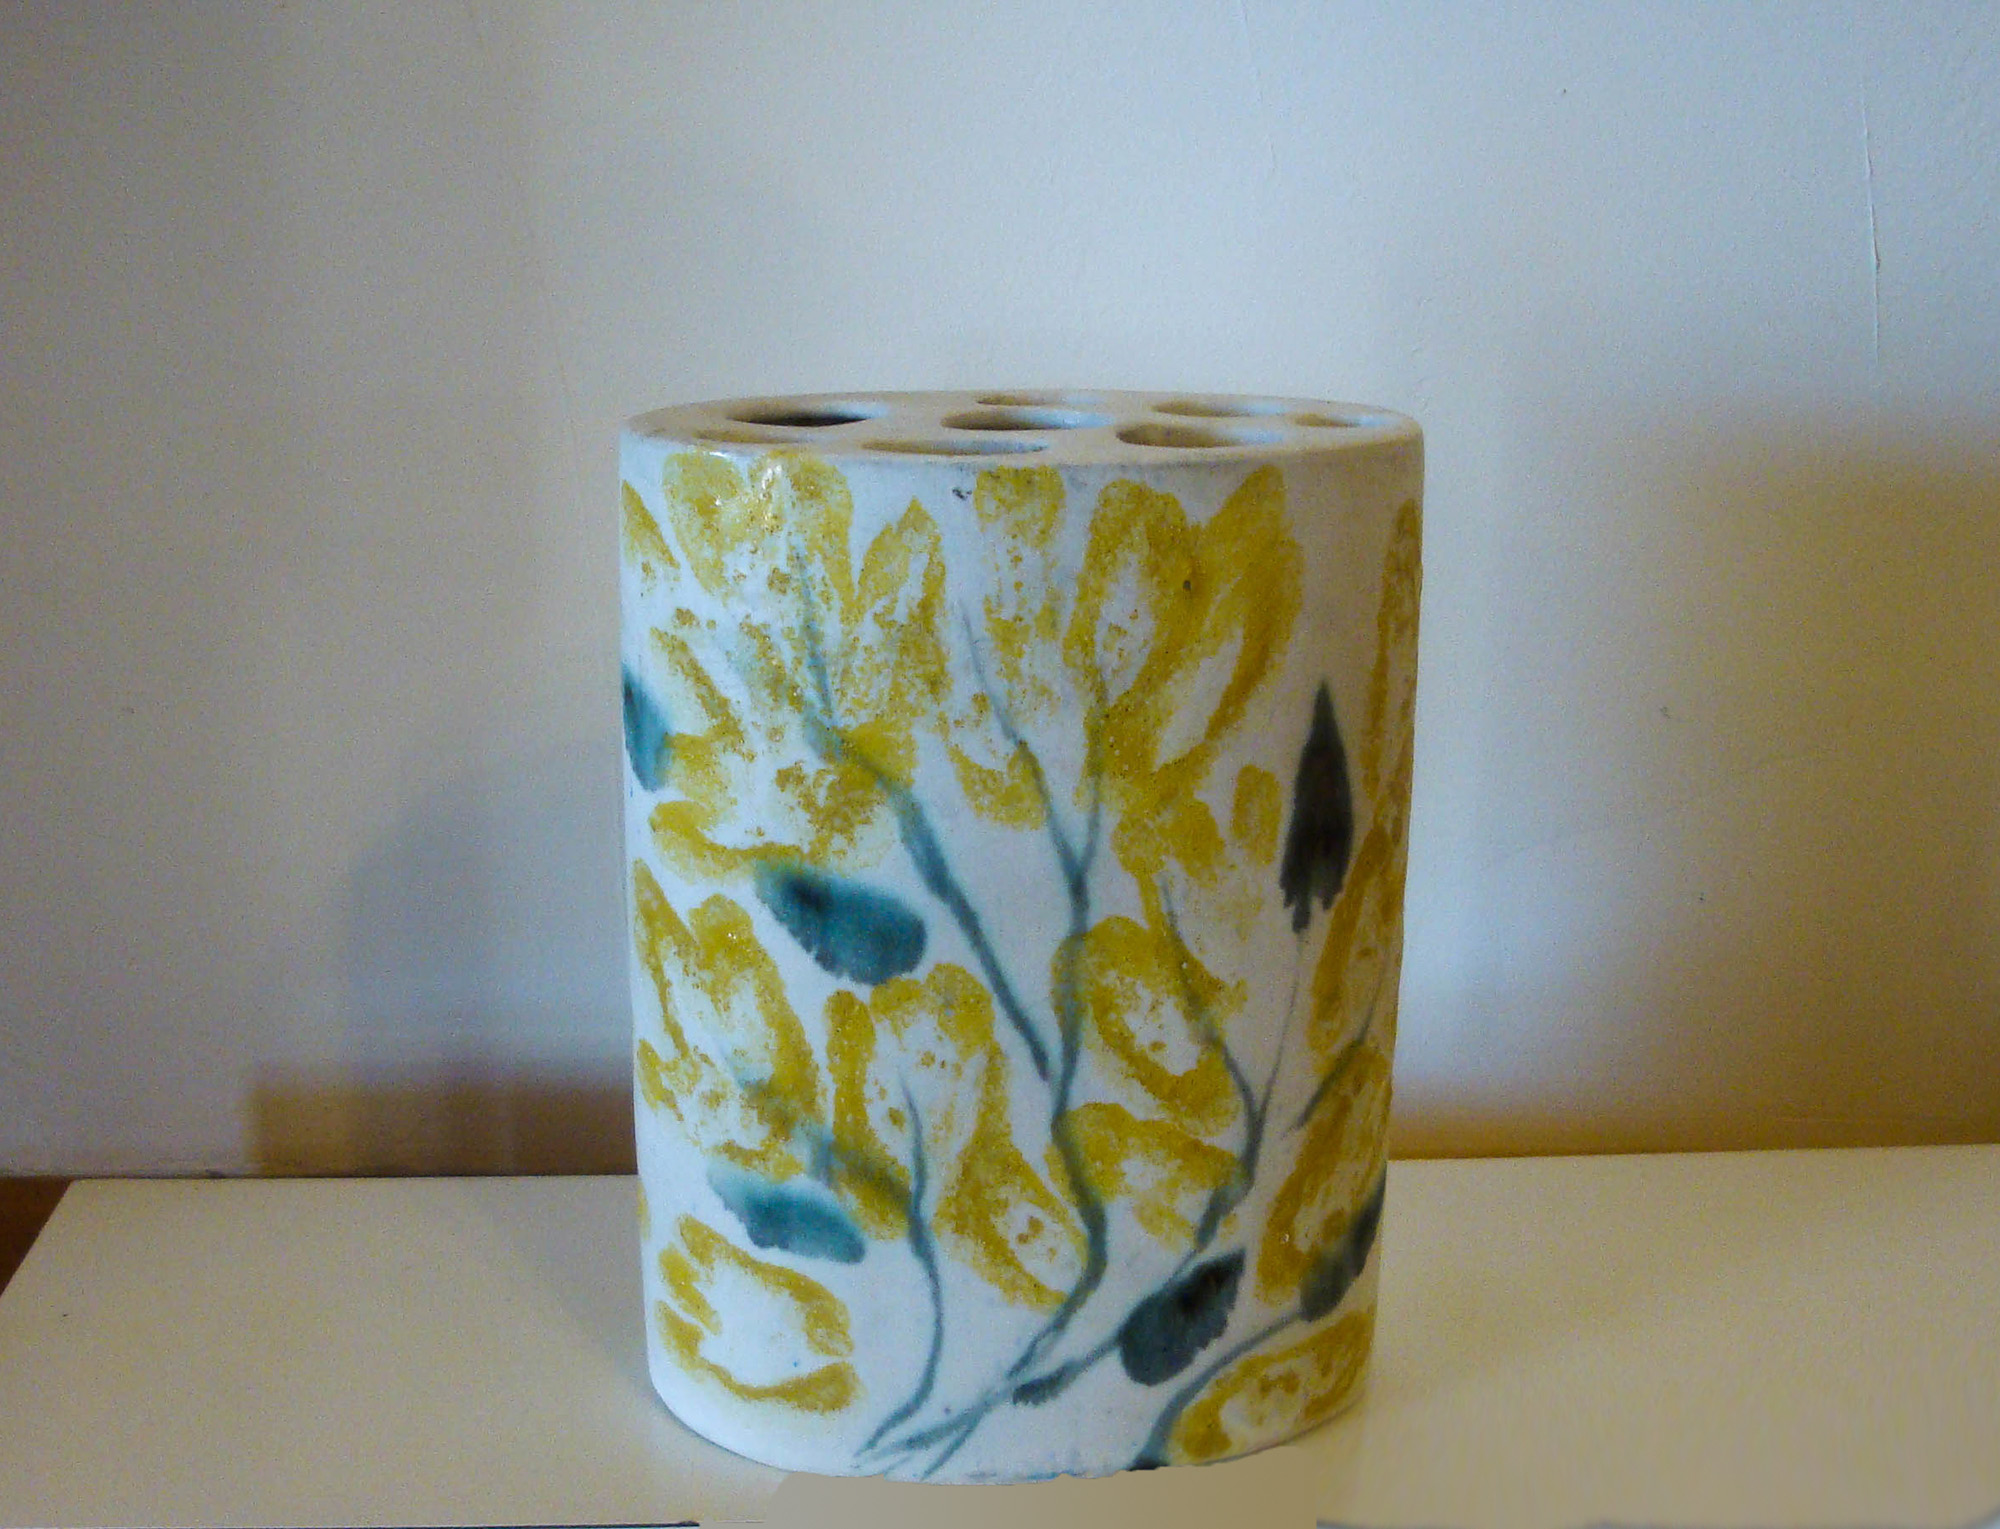 Short Oval Cylinder Vase in One of a Kind Decoration by Susan